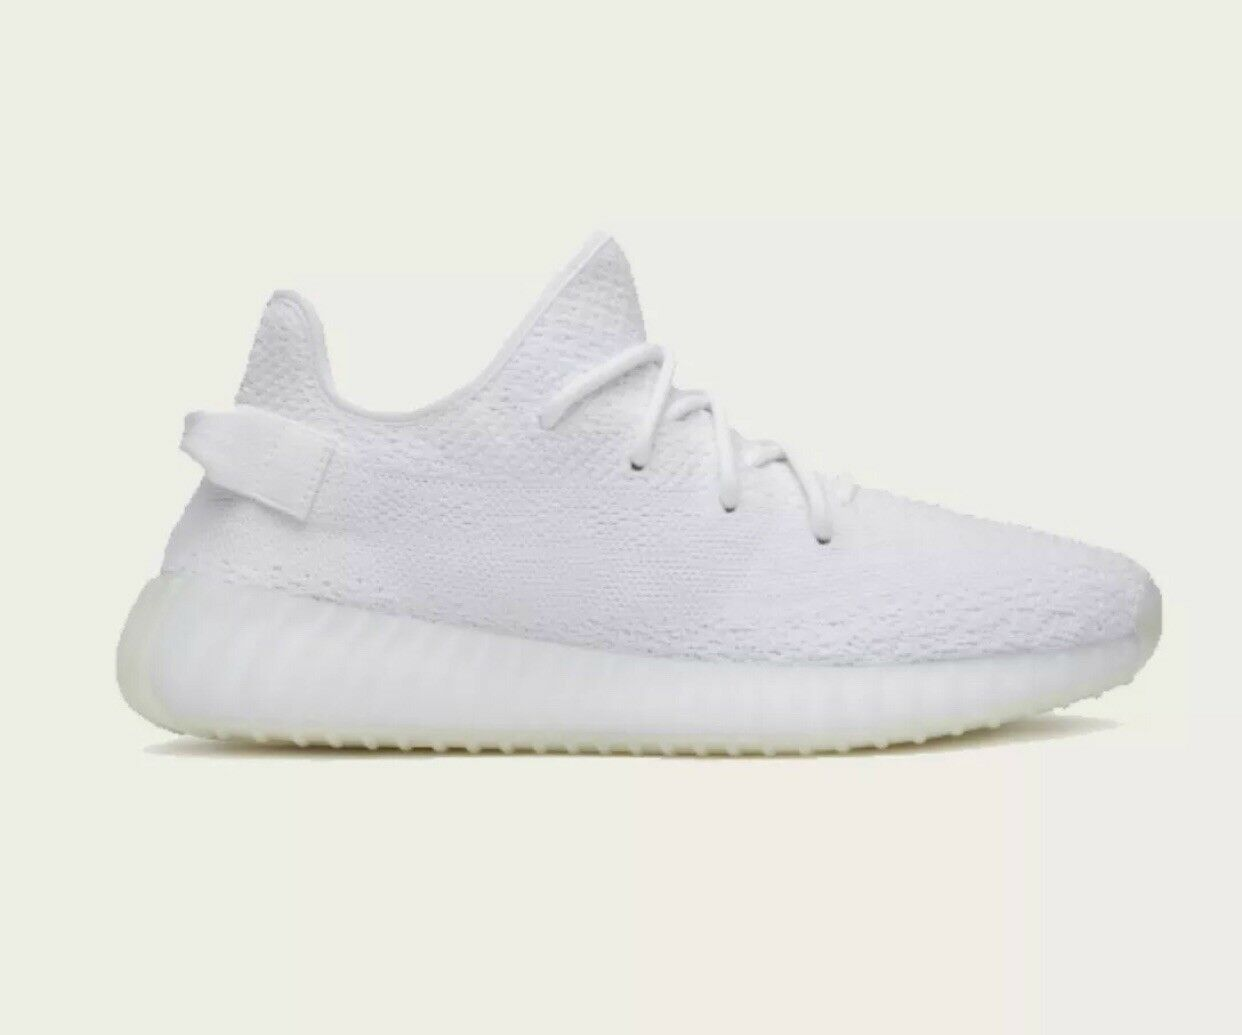 Adidas Yeezy Boost 350 V2 Triple White by Kayne West Size 10 US New Production